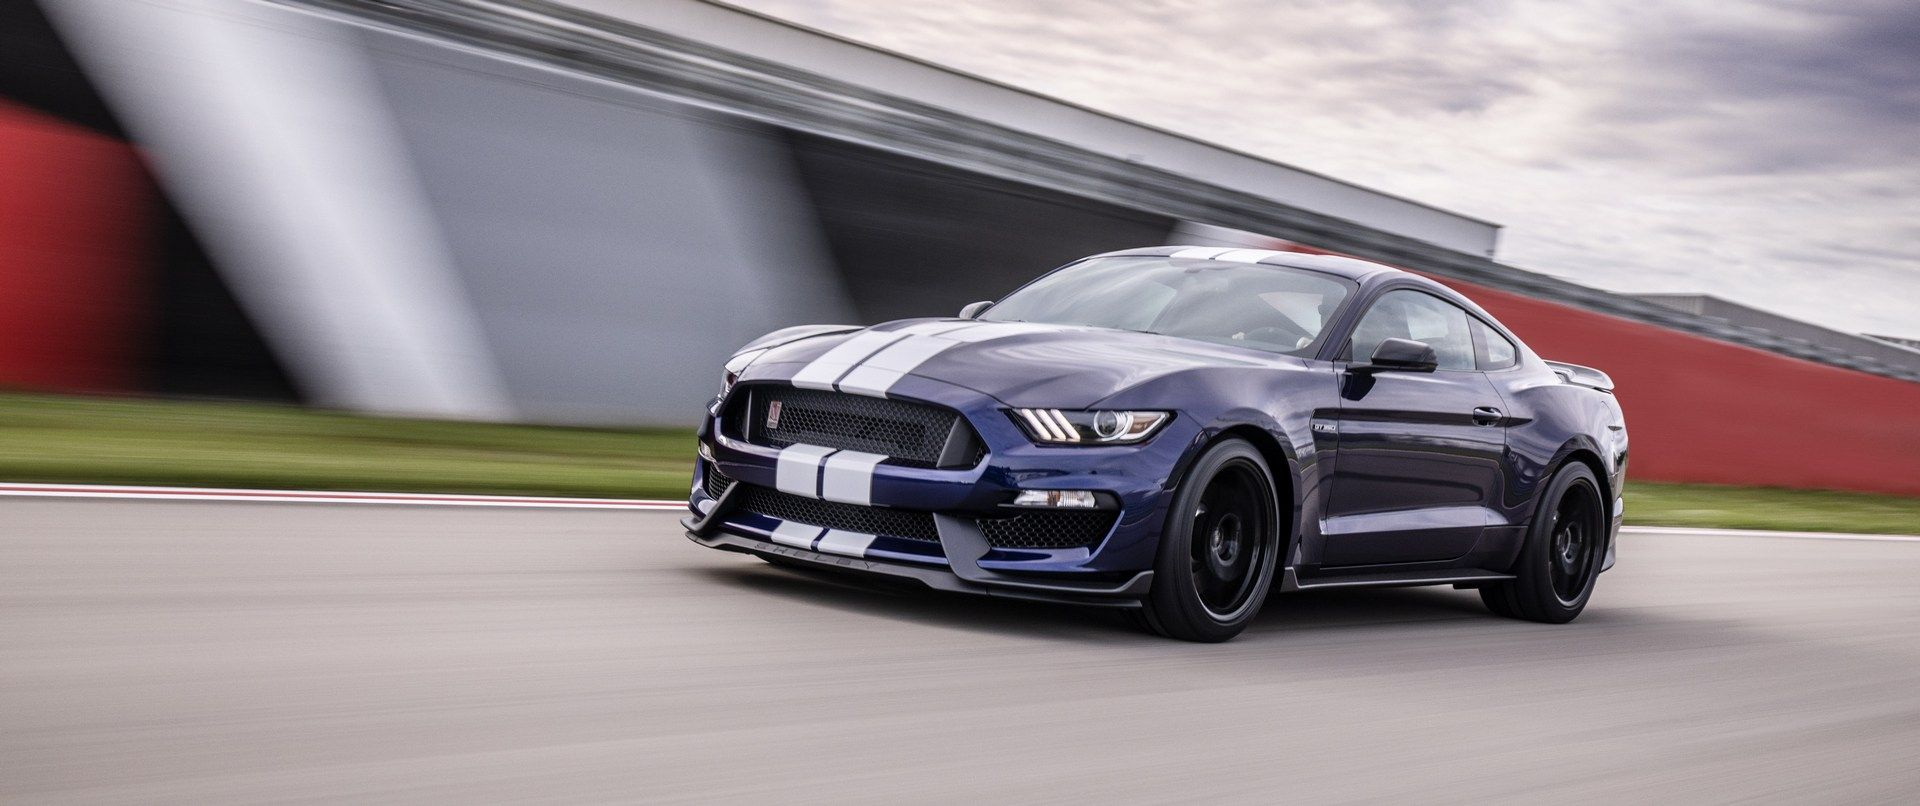 2019_Ford_Mustang_Shelby_GT350_0007